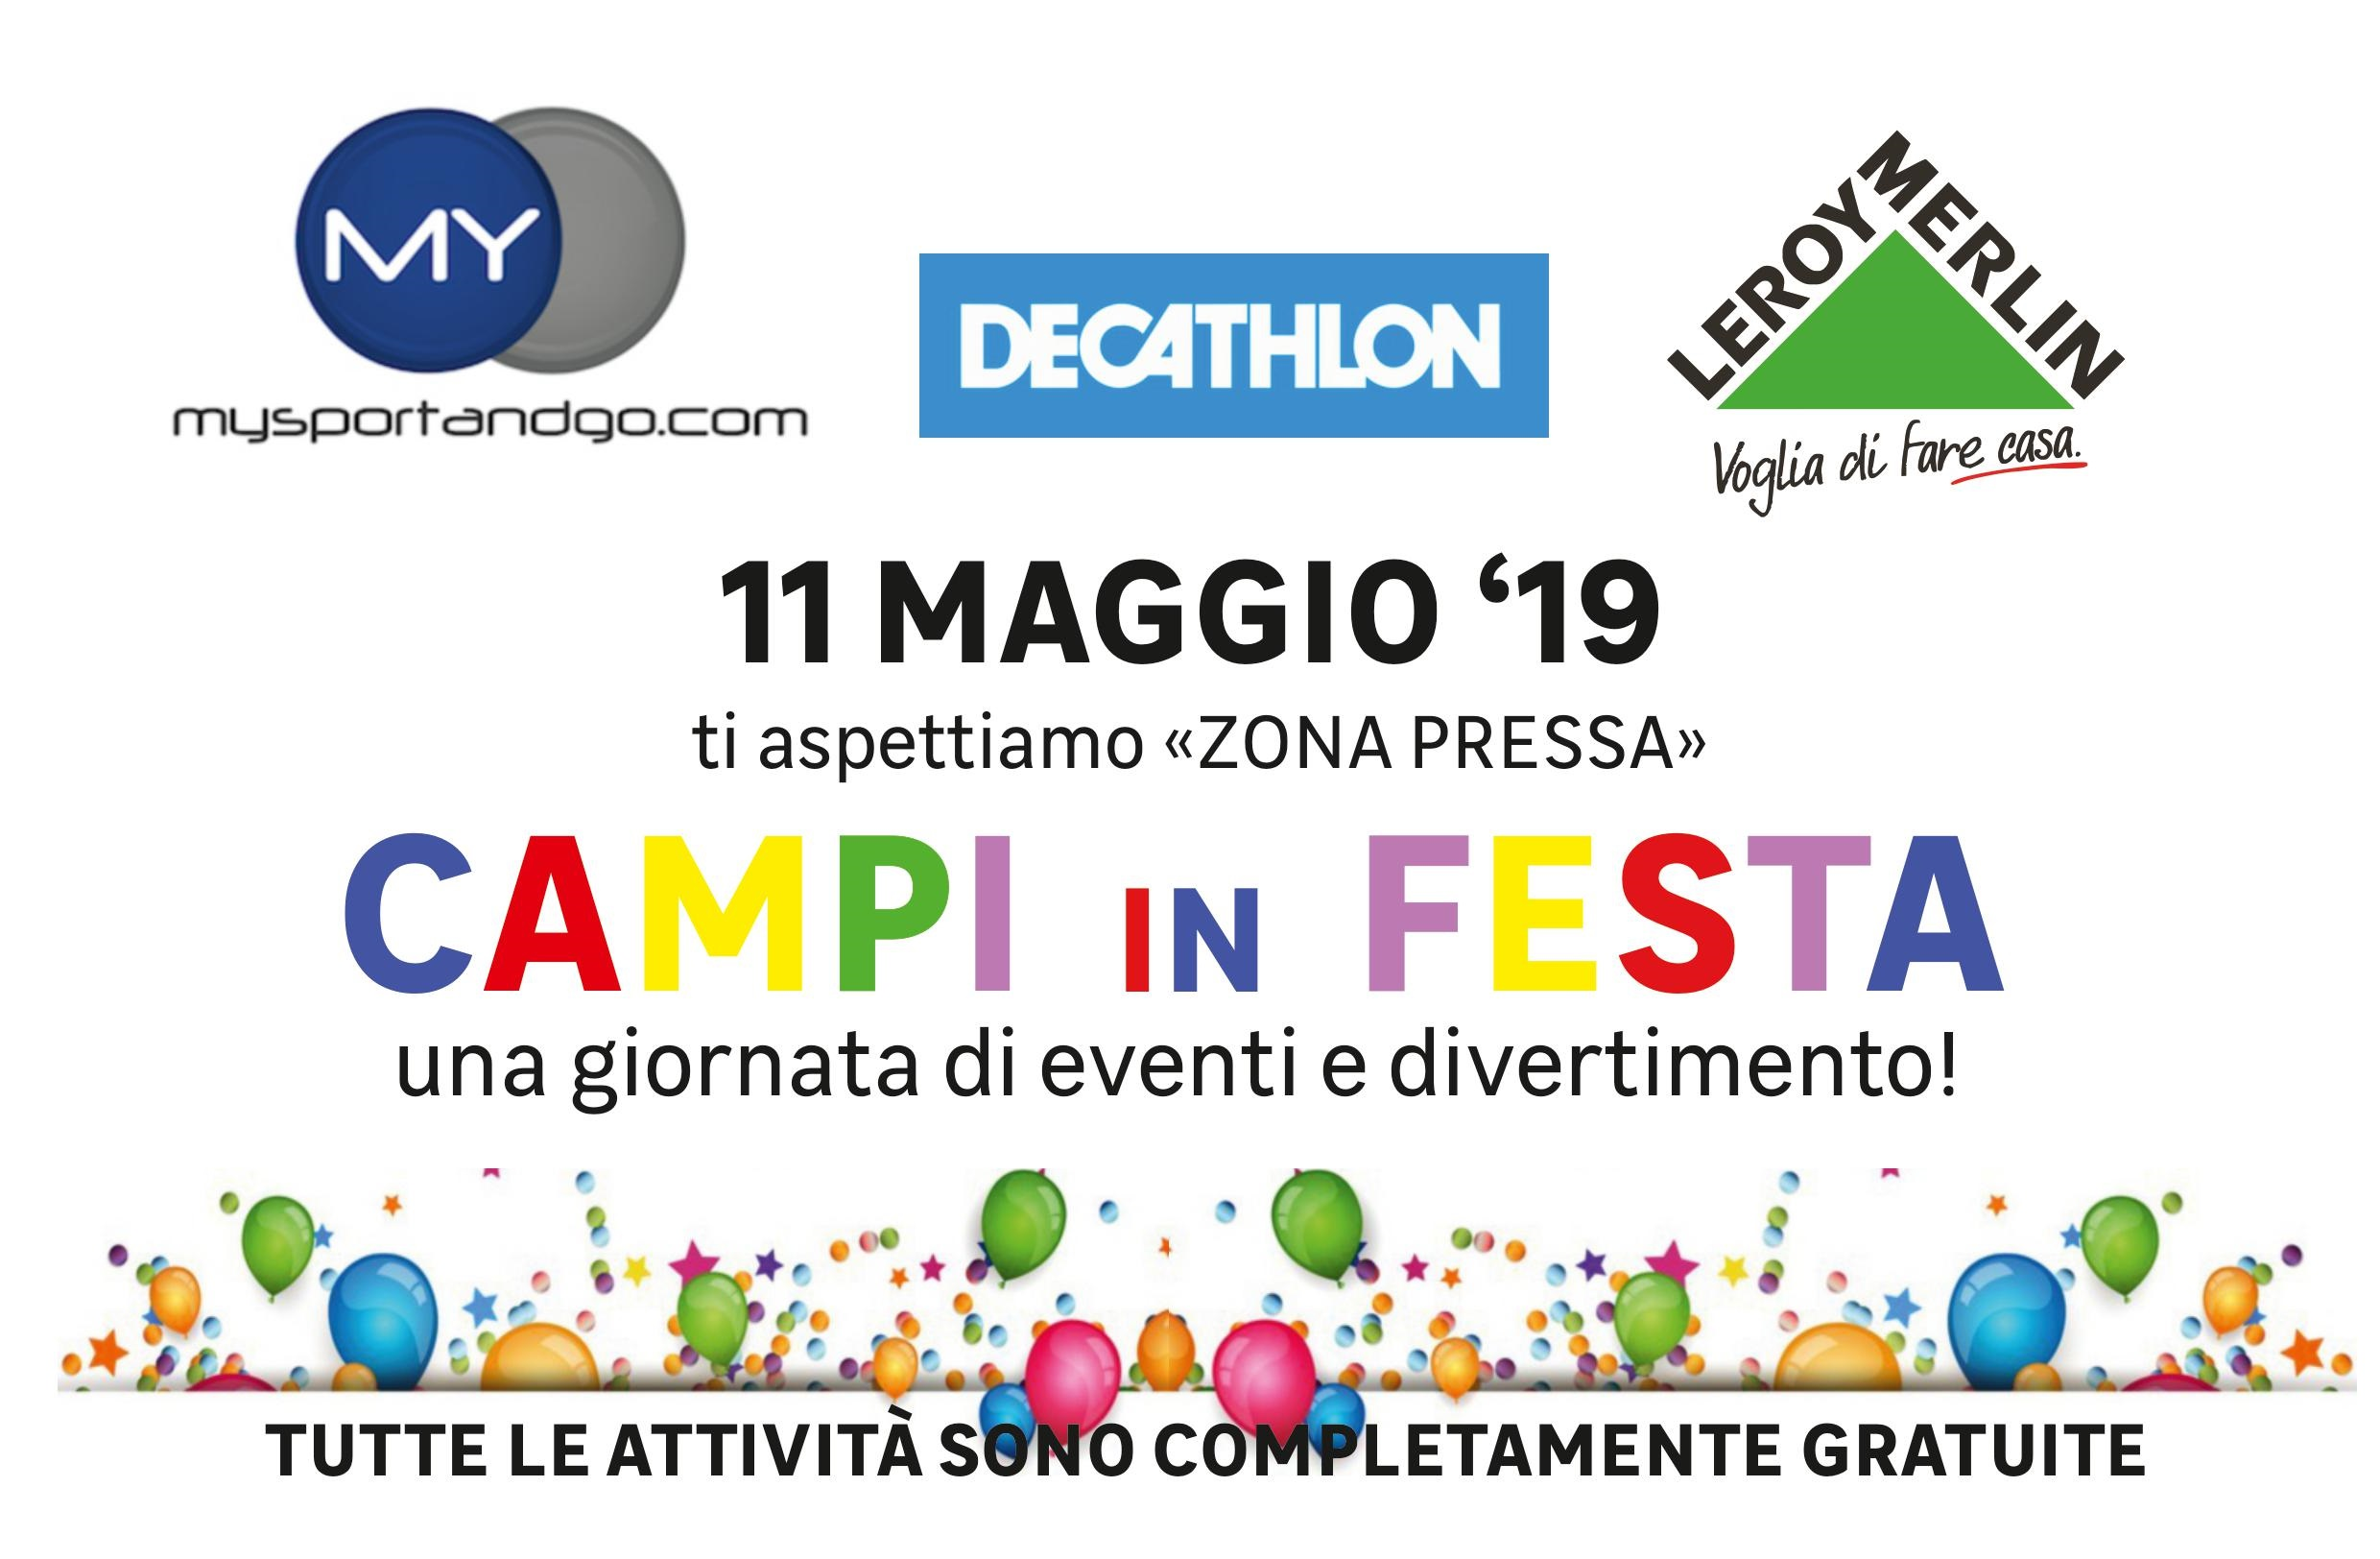 campi festa my sport and go